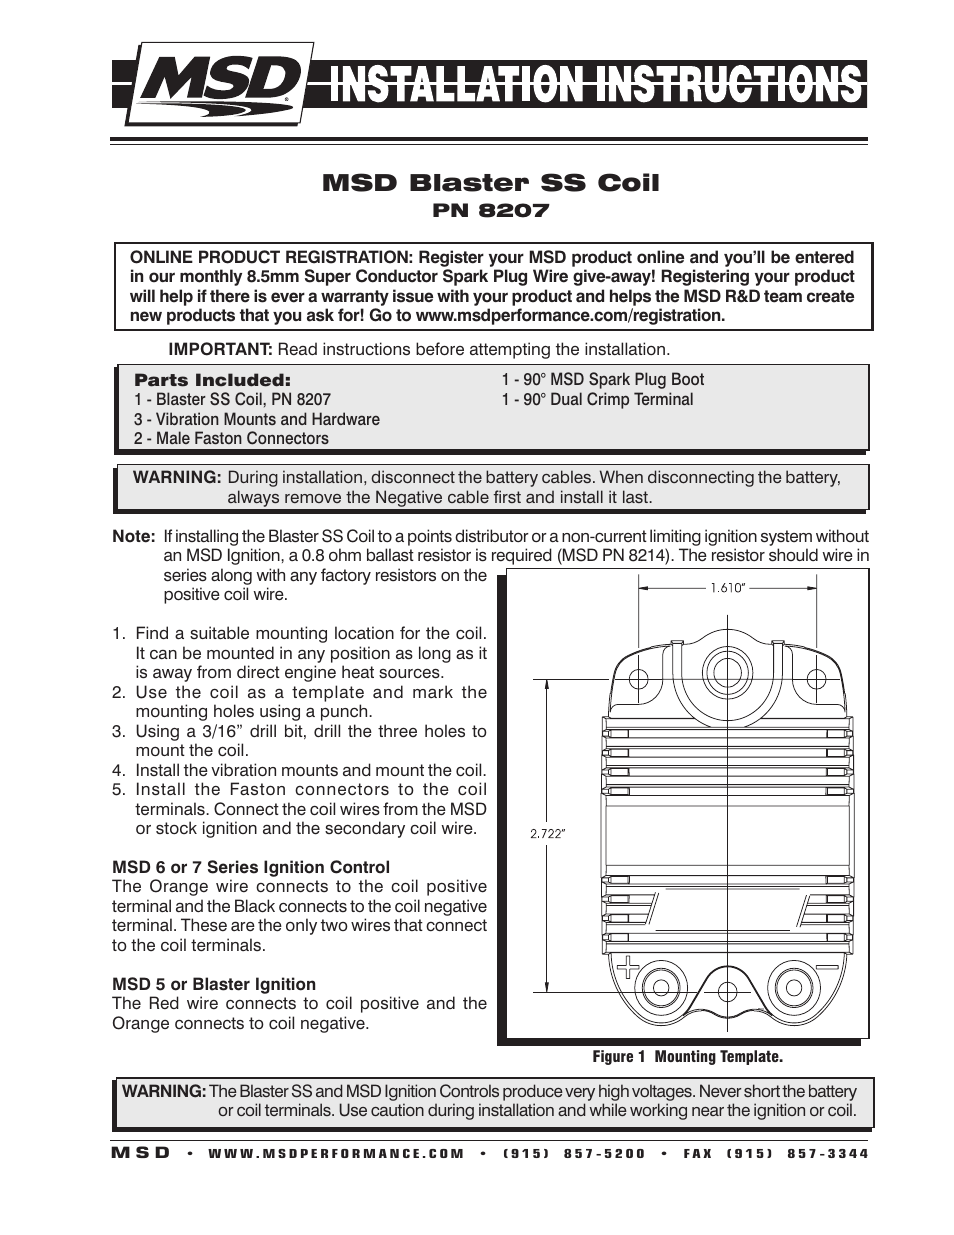 msd 8207 blaster ss coil installation page1 msd 8207 blaster ss coil installation user manual 2 pages msd blaster ss coil wiring diagram at crackthecode.co